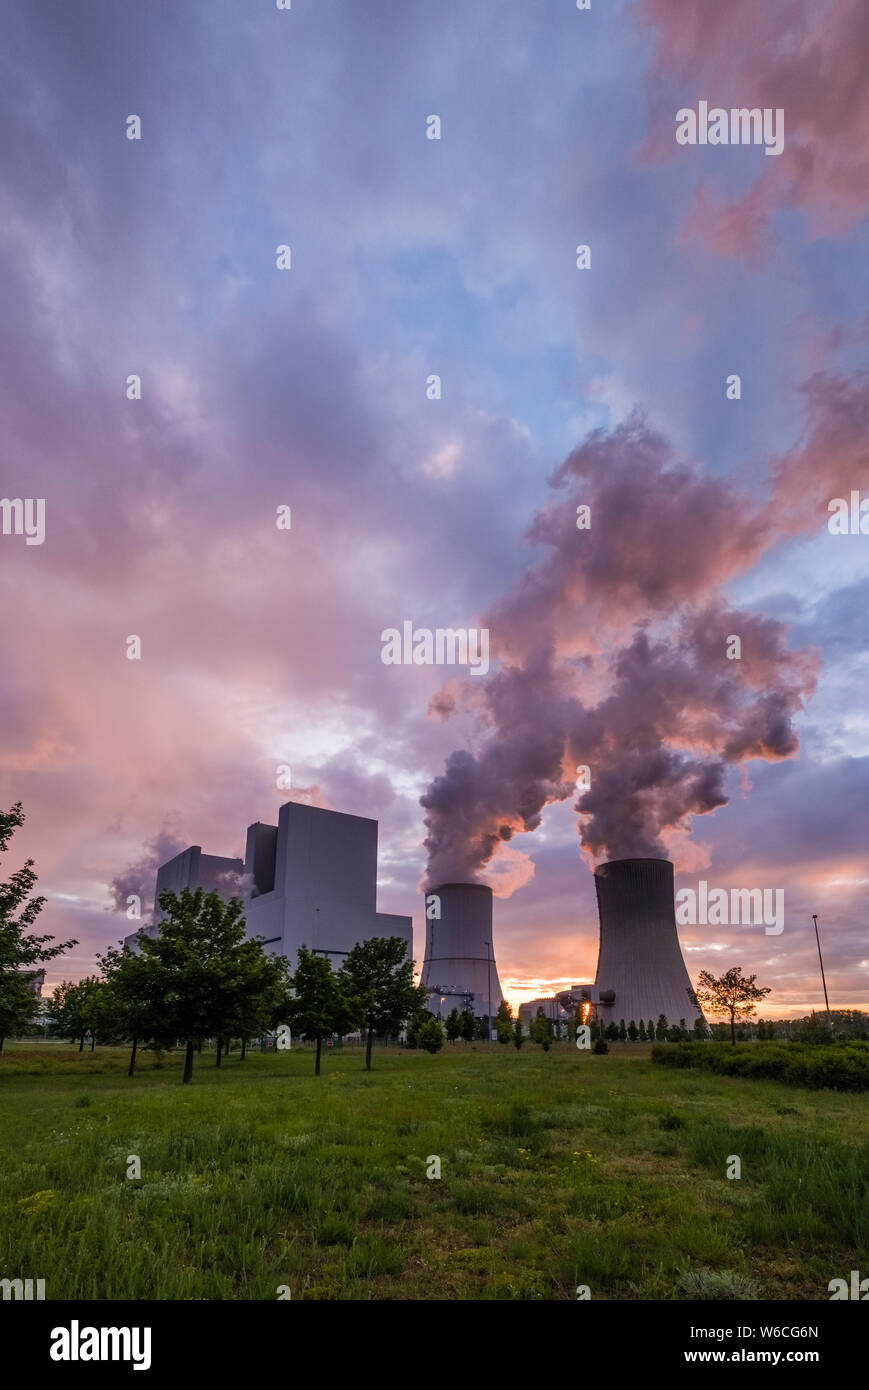 The buildings and steaming cooling towers of a coal-fired power plant in agricultural landscape at sunset Stock Photo